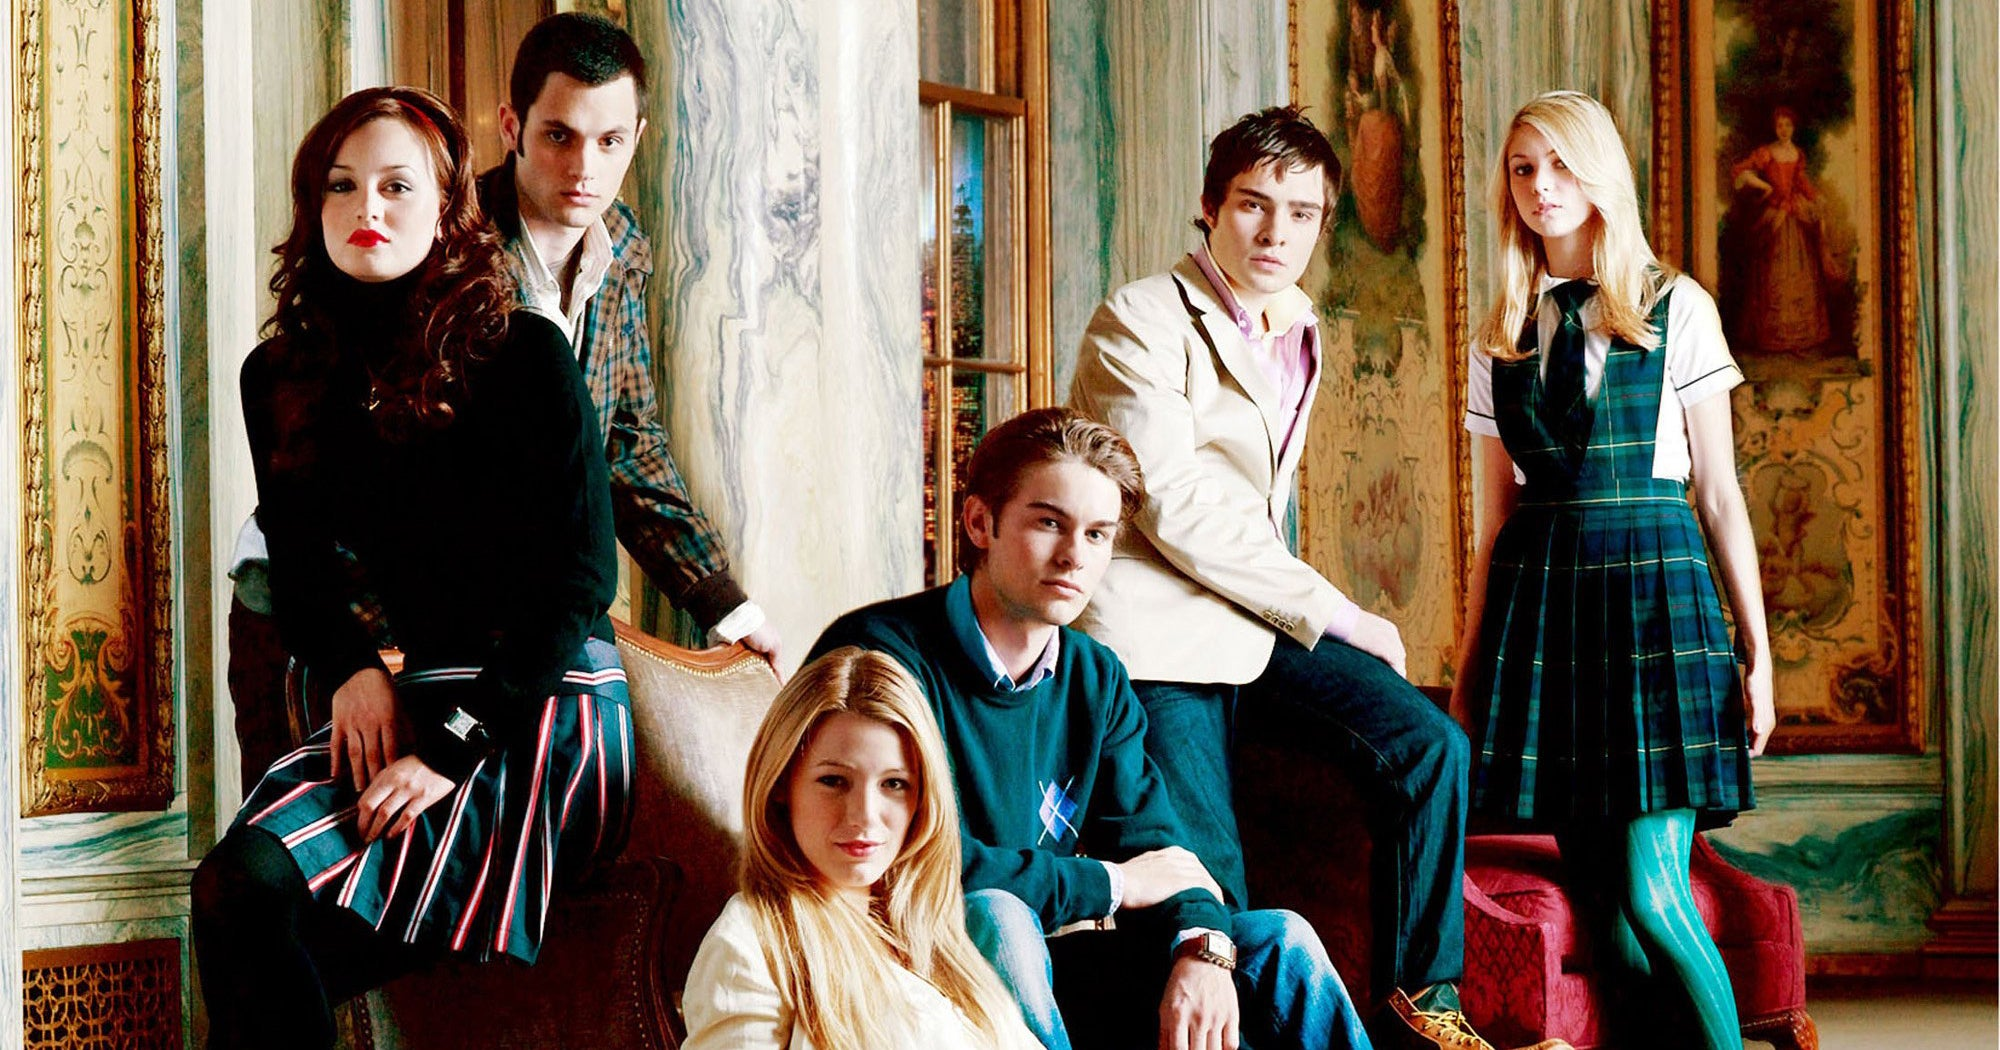 Gossip Girl Had A Diversity Problem, But The Reboot Promises To Fix It